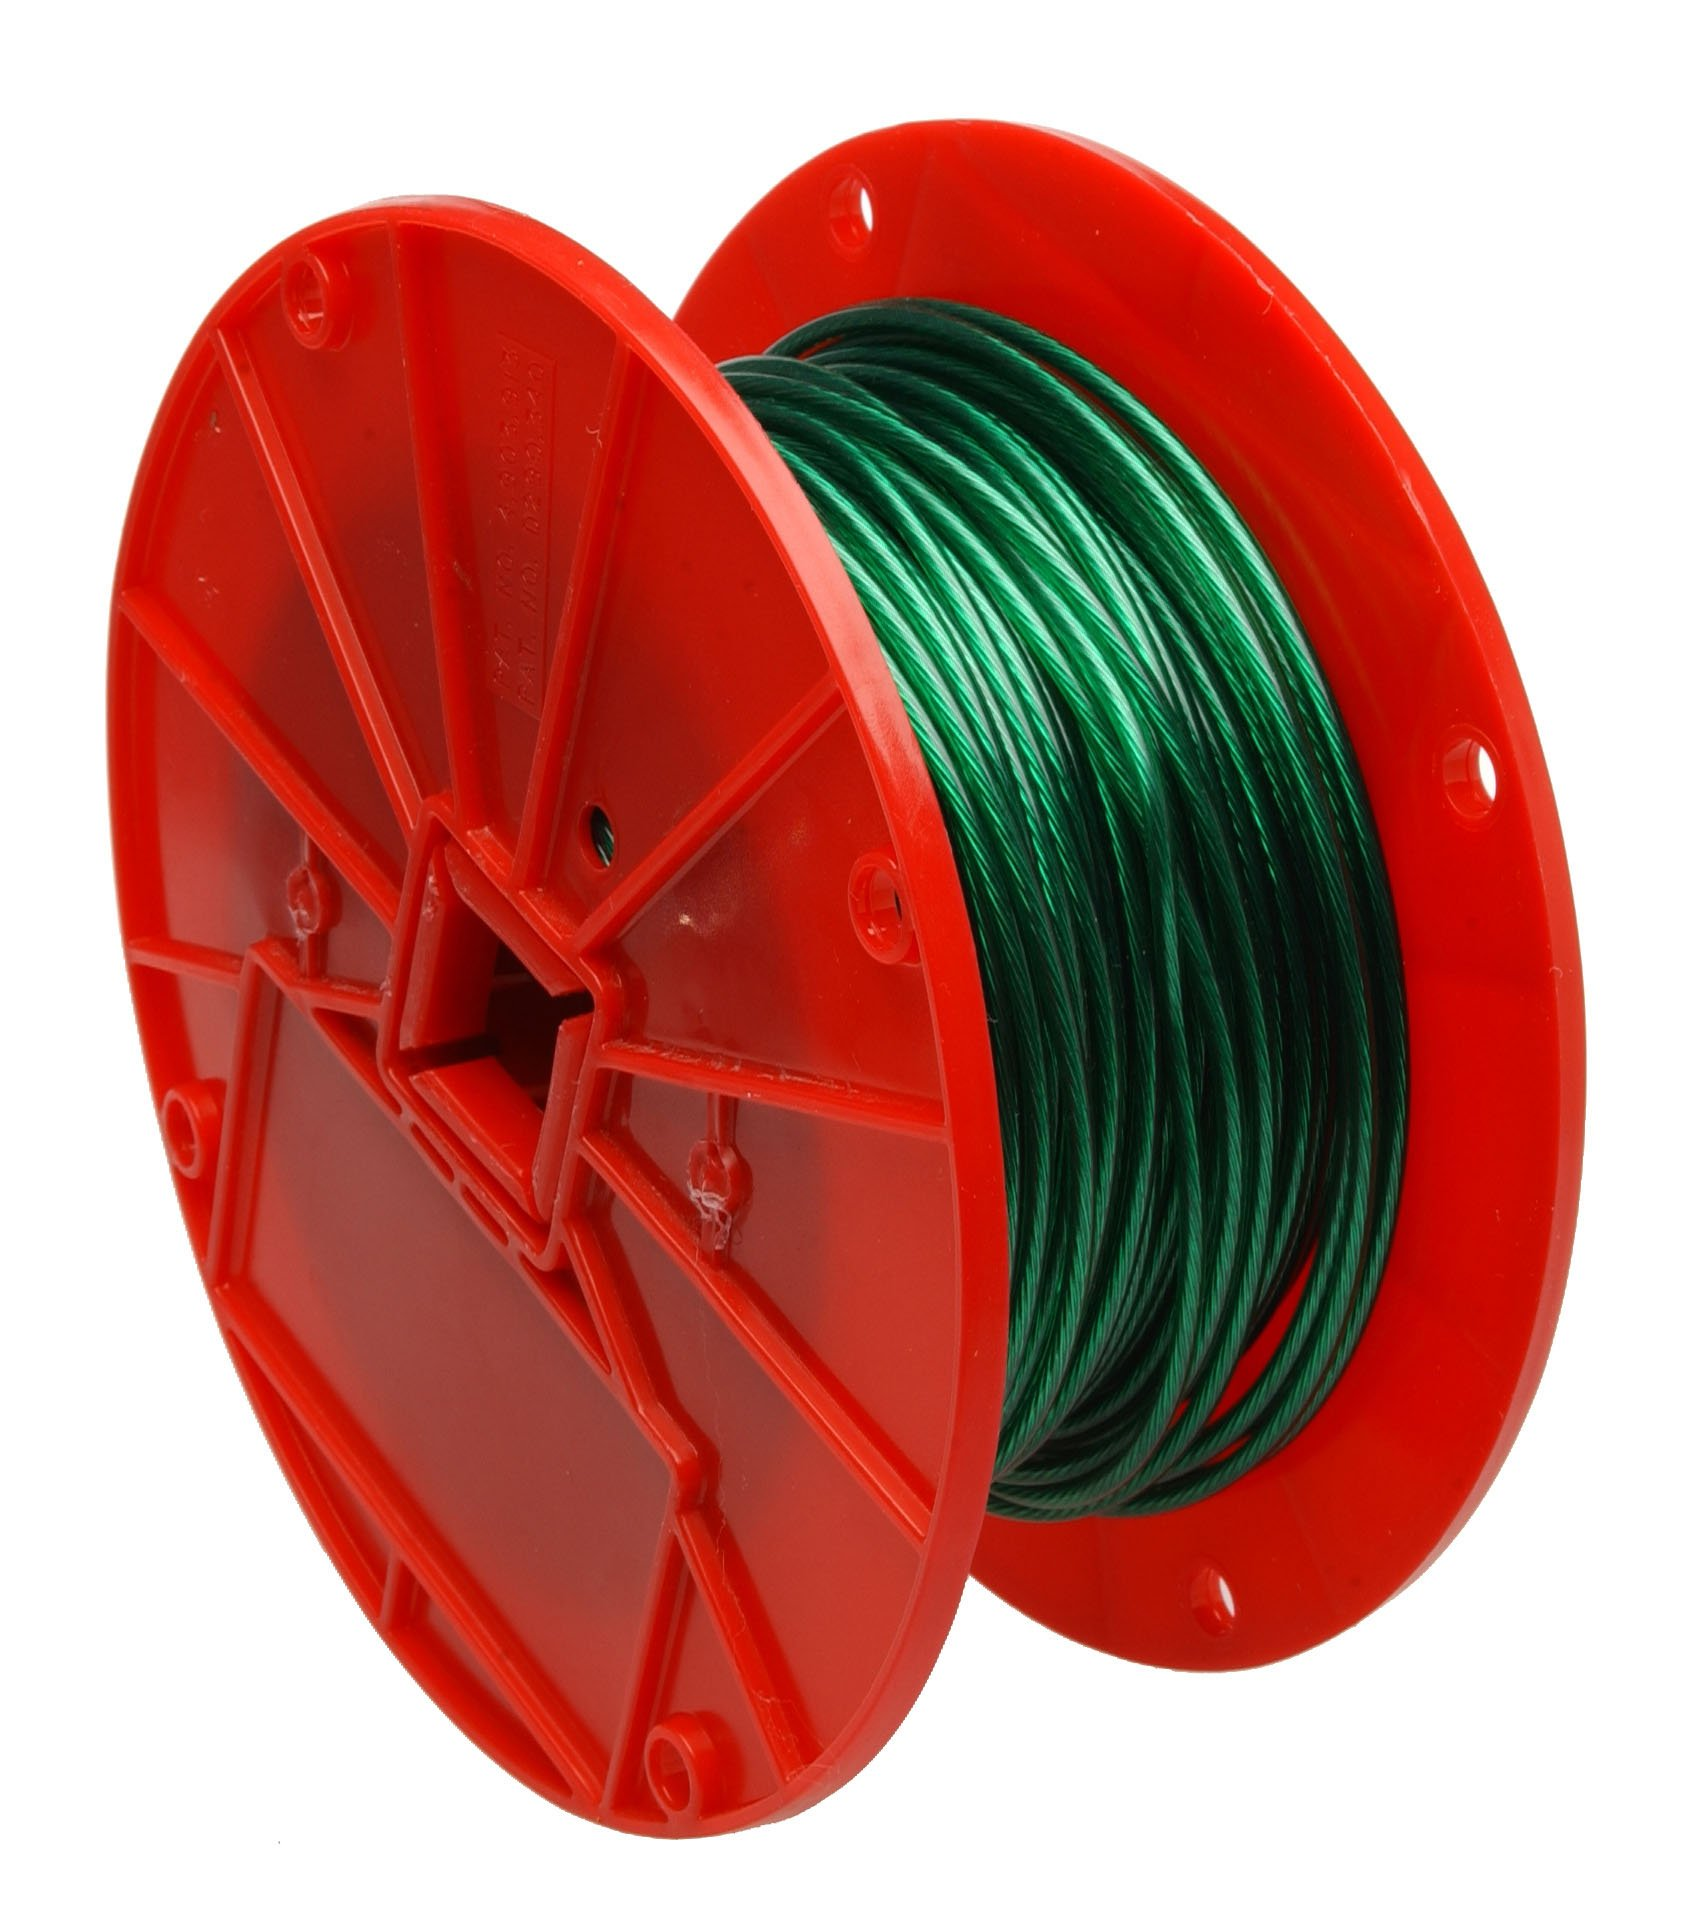 Galvanized Steel Wire Rope on Reel, Vinyl Coated, 1x7 Strand, Green, 1/16'' Bare OD, 1/8'' Coated OD, 250' Length, 28 lbs Breaking Strength